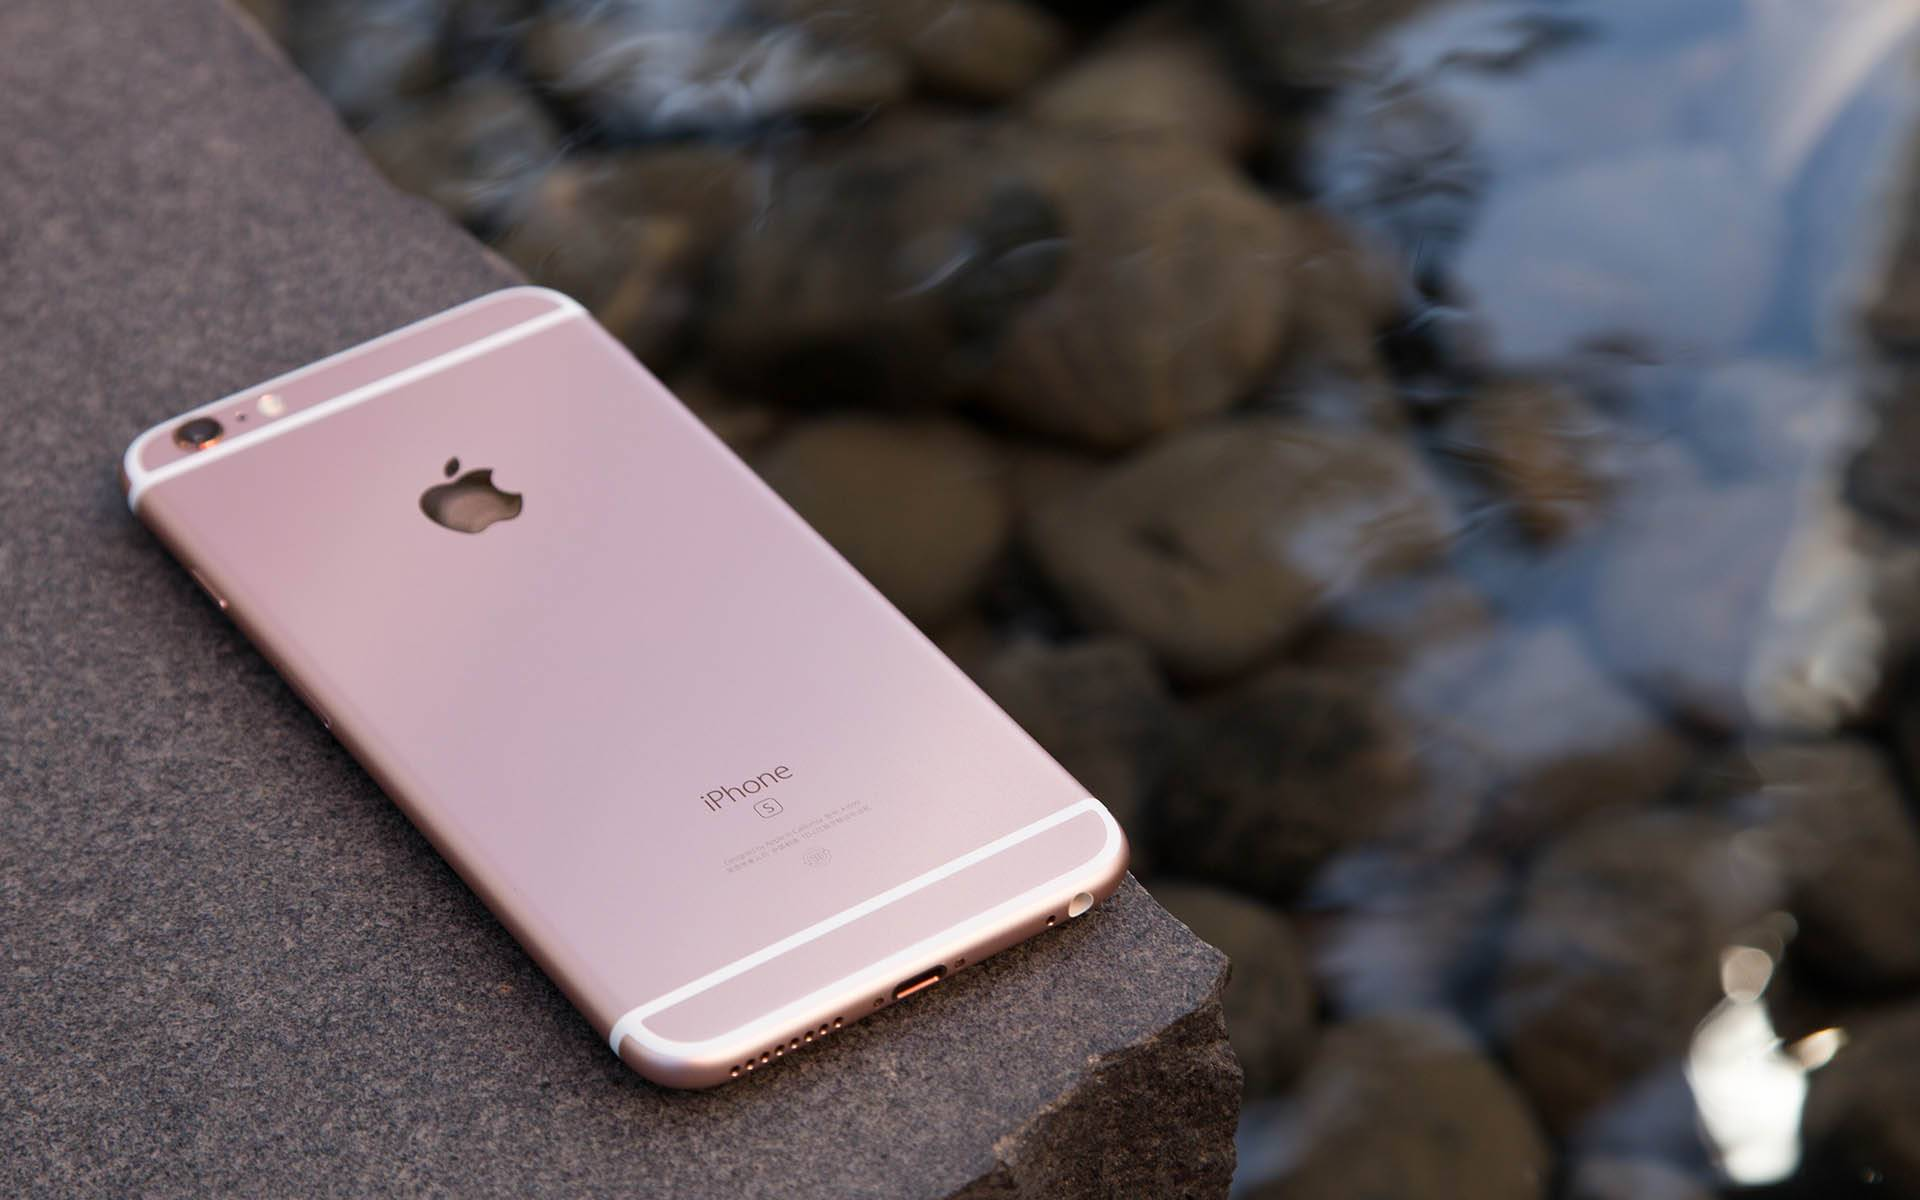 Apple iPhone 6s plus Photo By Hao ying hy-34